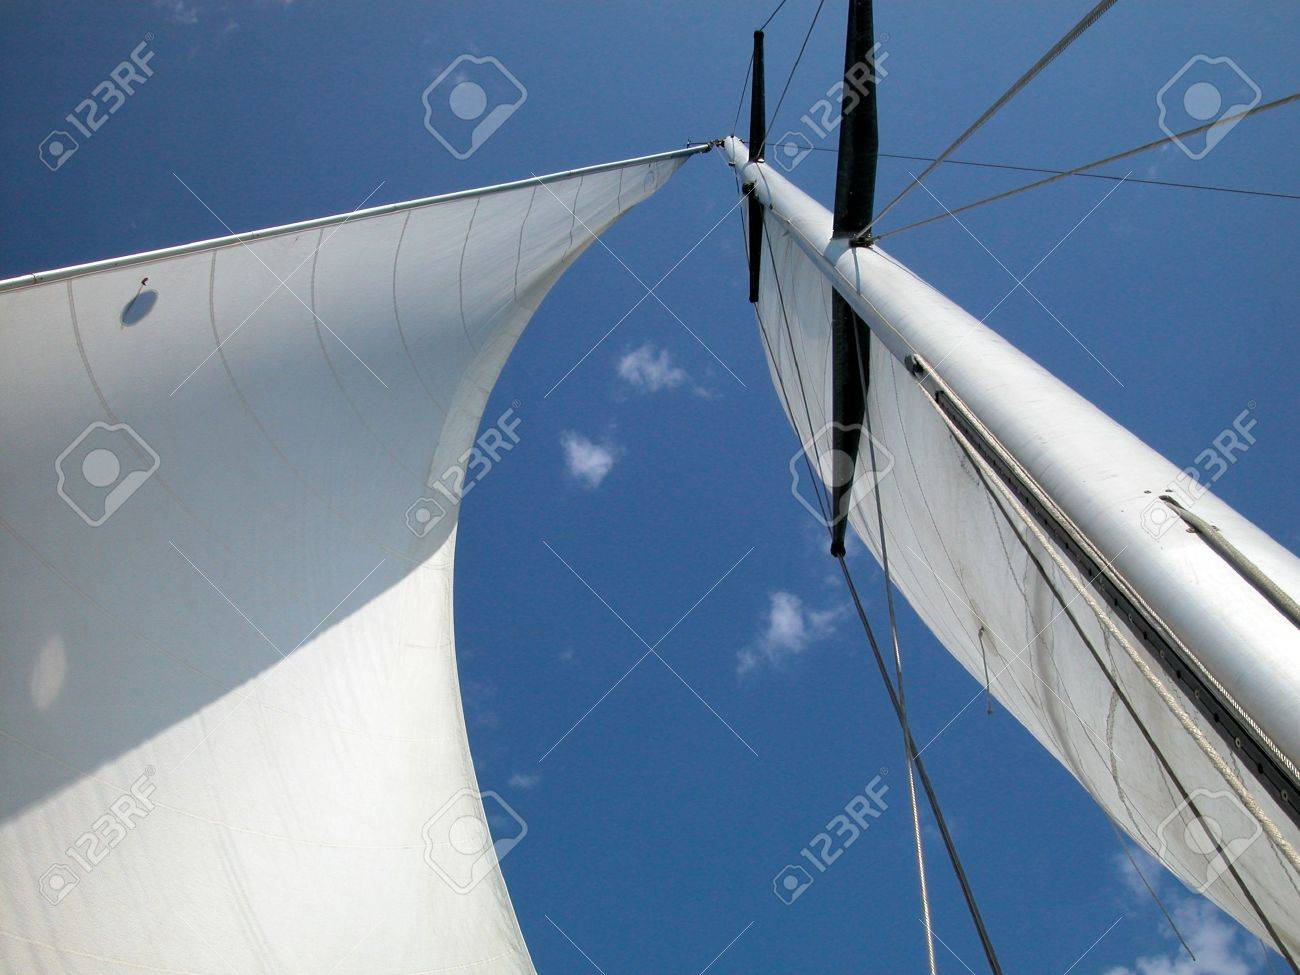 A view looking upwards at the mast, sail and rigging of a yacht underway Stock Photo - 4935985